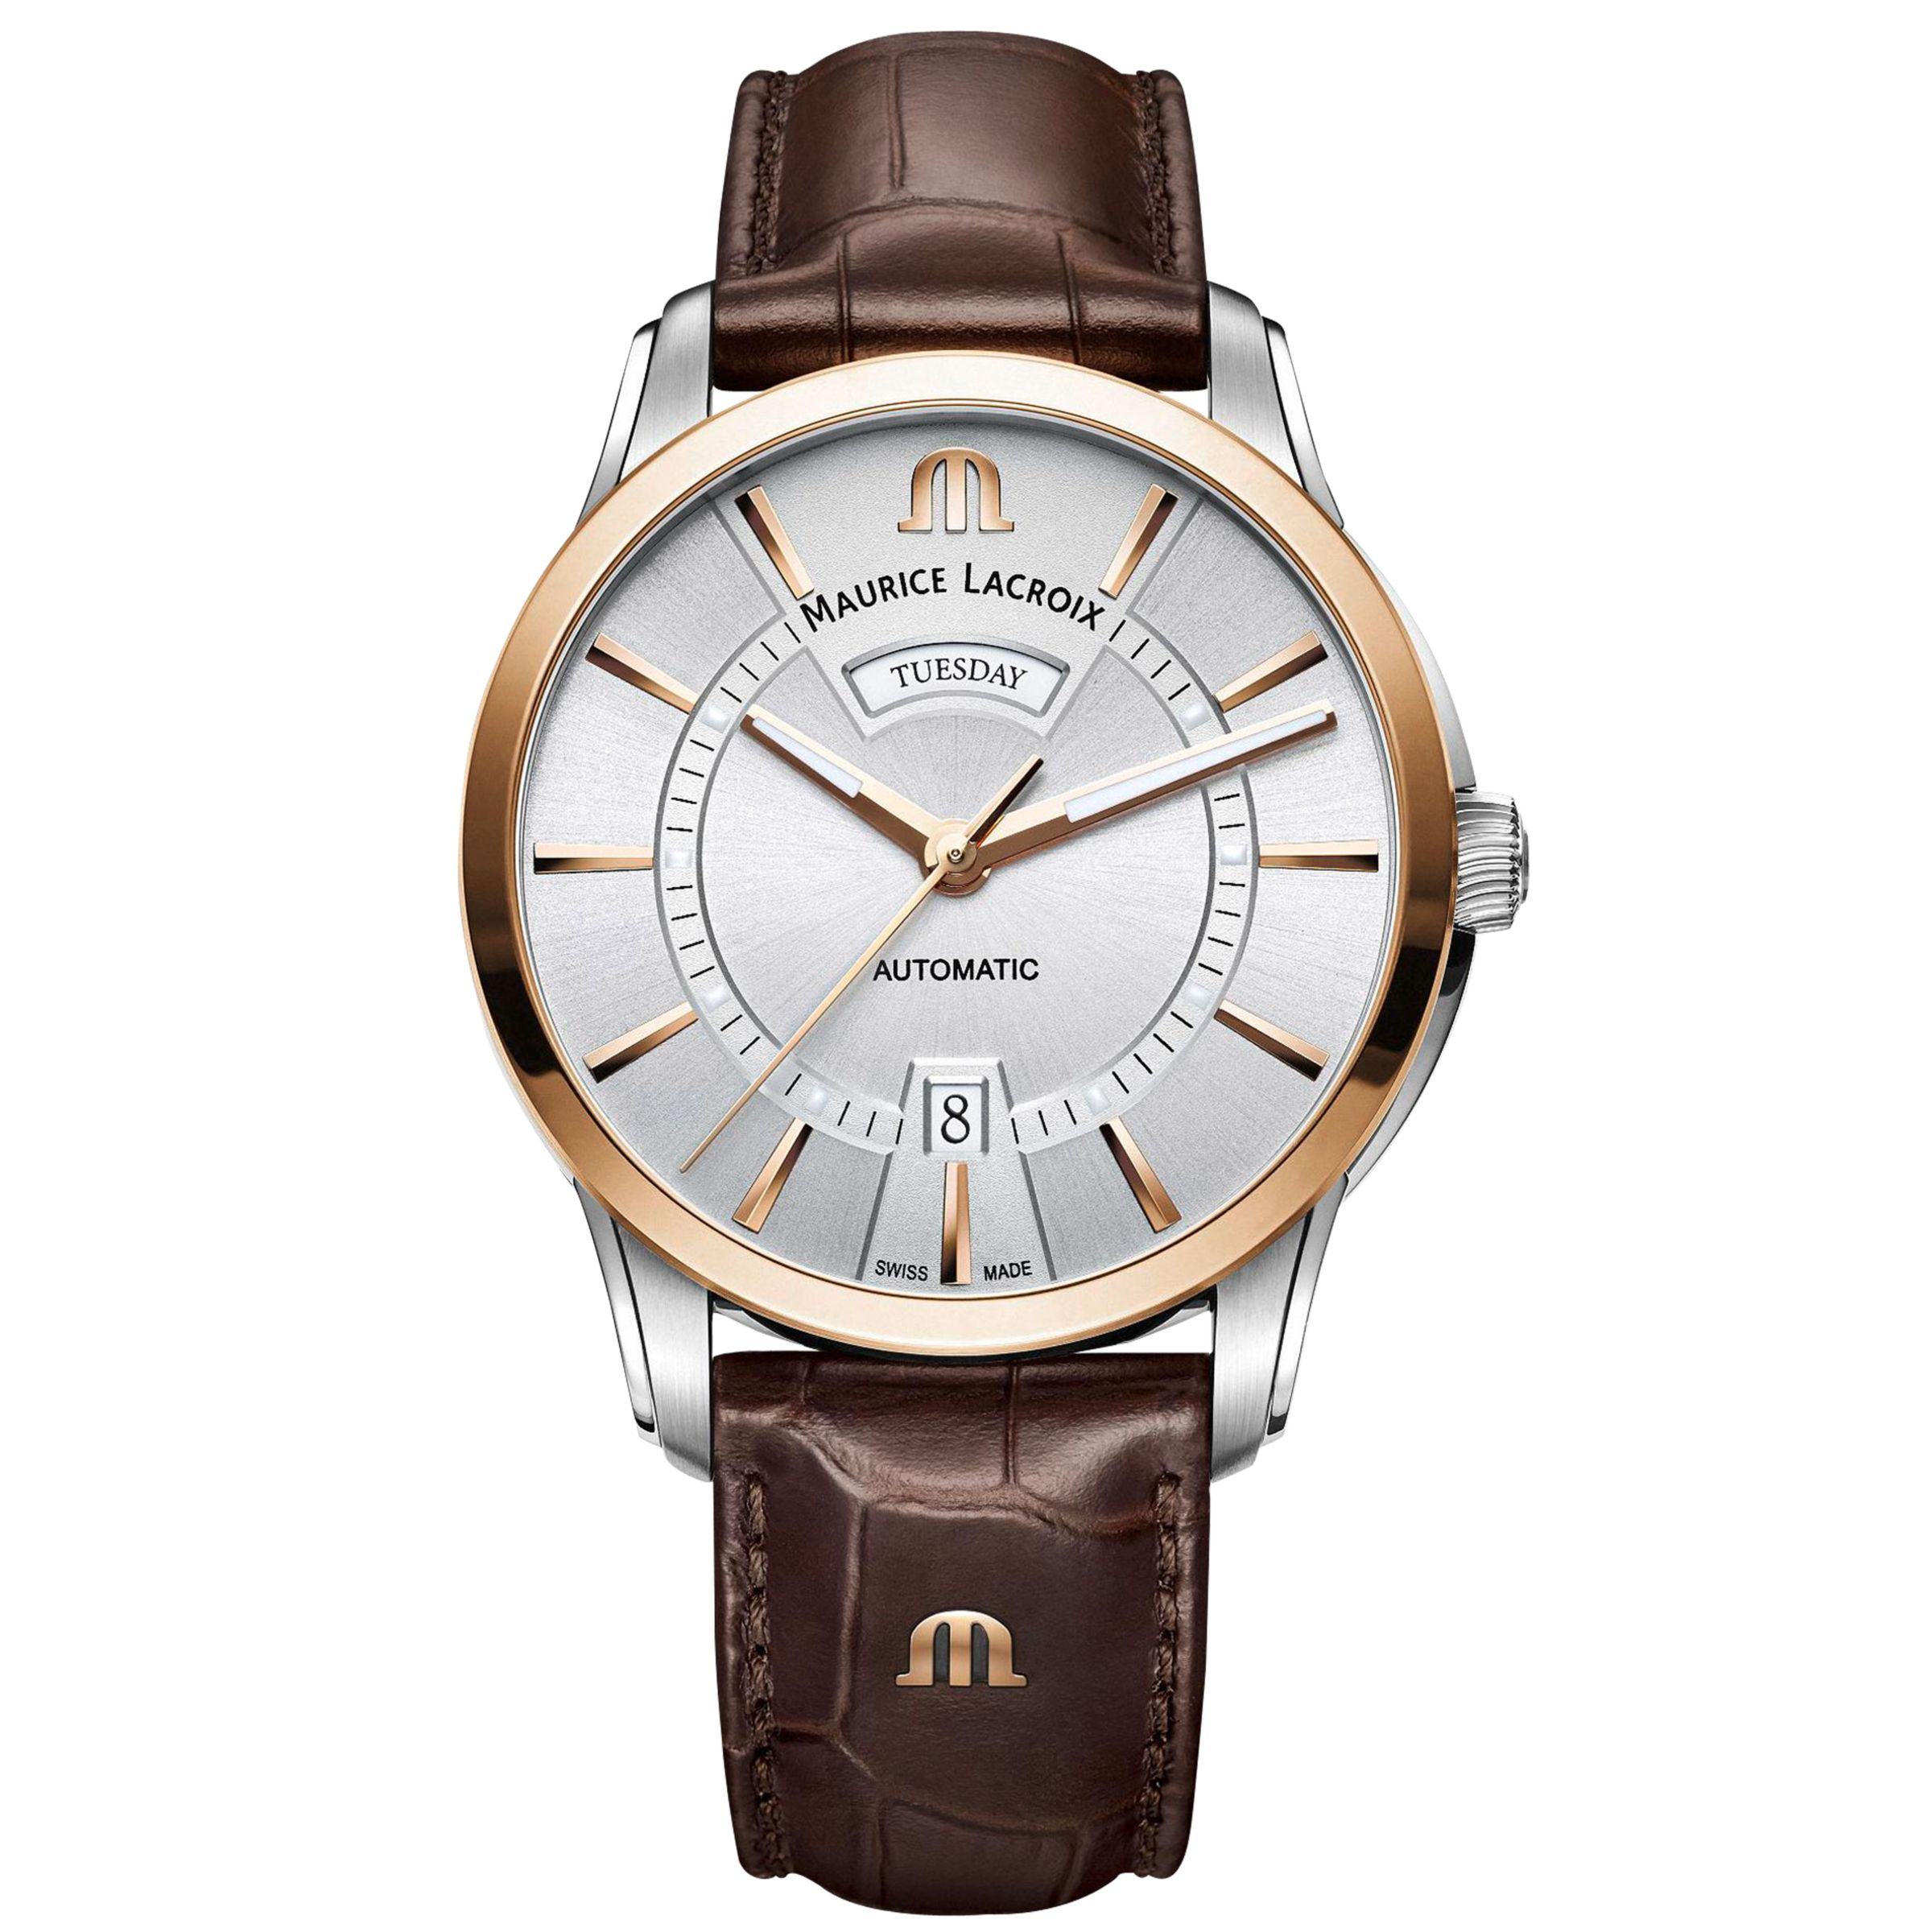 Maurice Lacroix Maurice Lacroix PT6358-PS101-130-1 Men's Pontos Automatic Day Date Leather Strap Watch, Brown/Silver